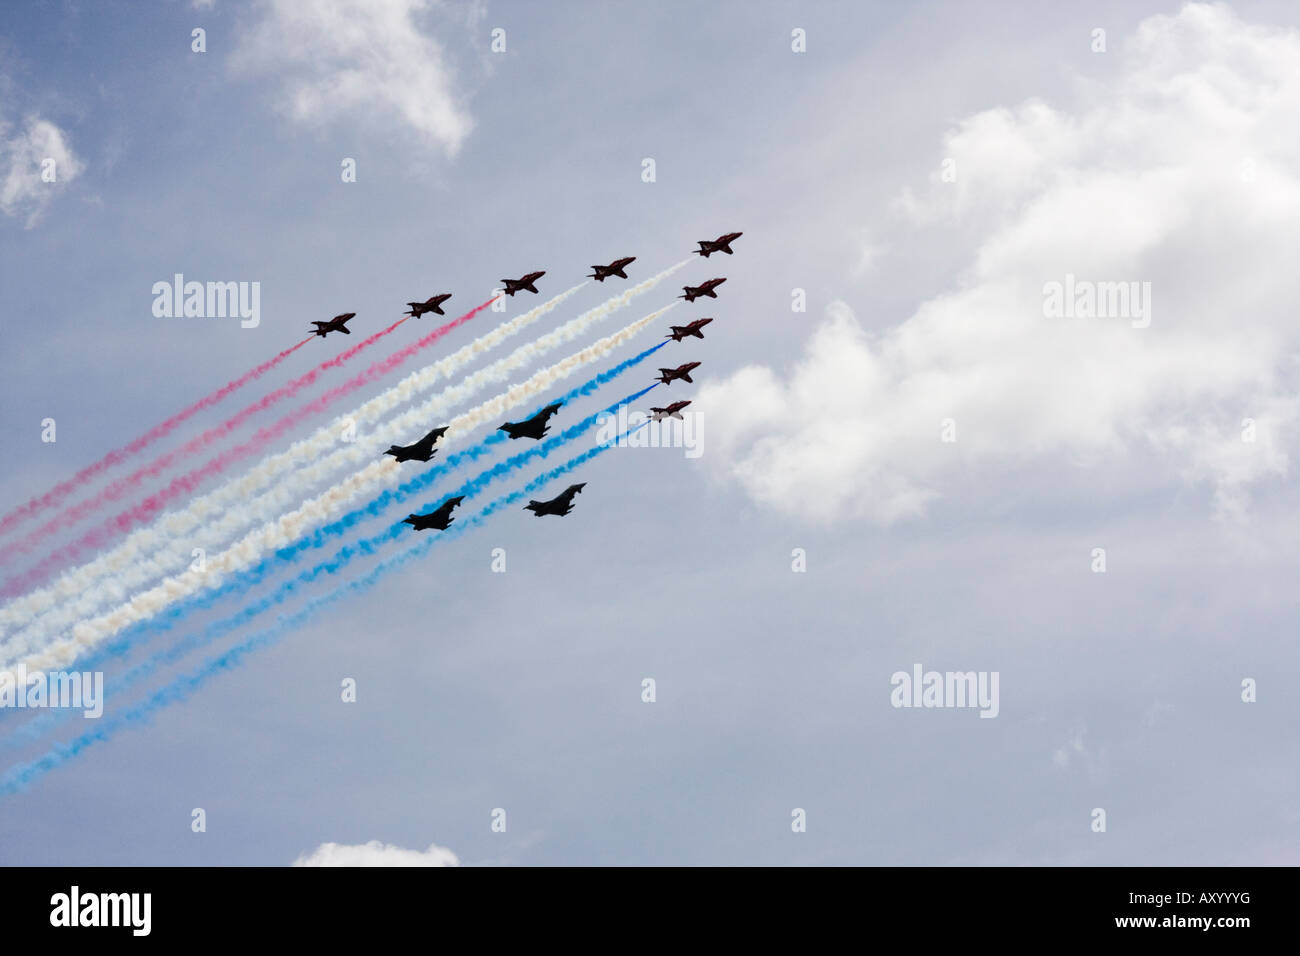 RAF Red Arrows formation aerobatic team flying in formation with 4 Typhoon aircraft over London to celebrate 90th - Stock Image